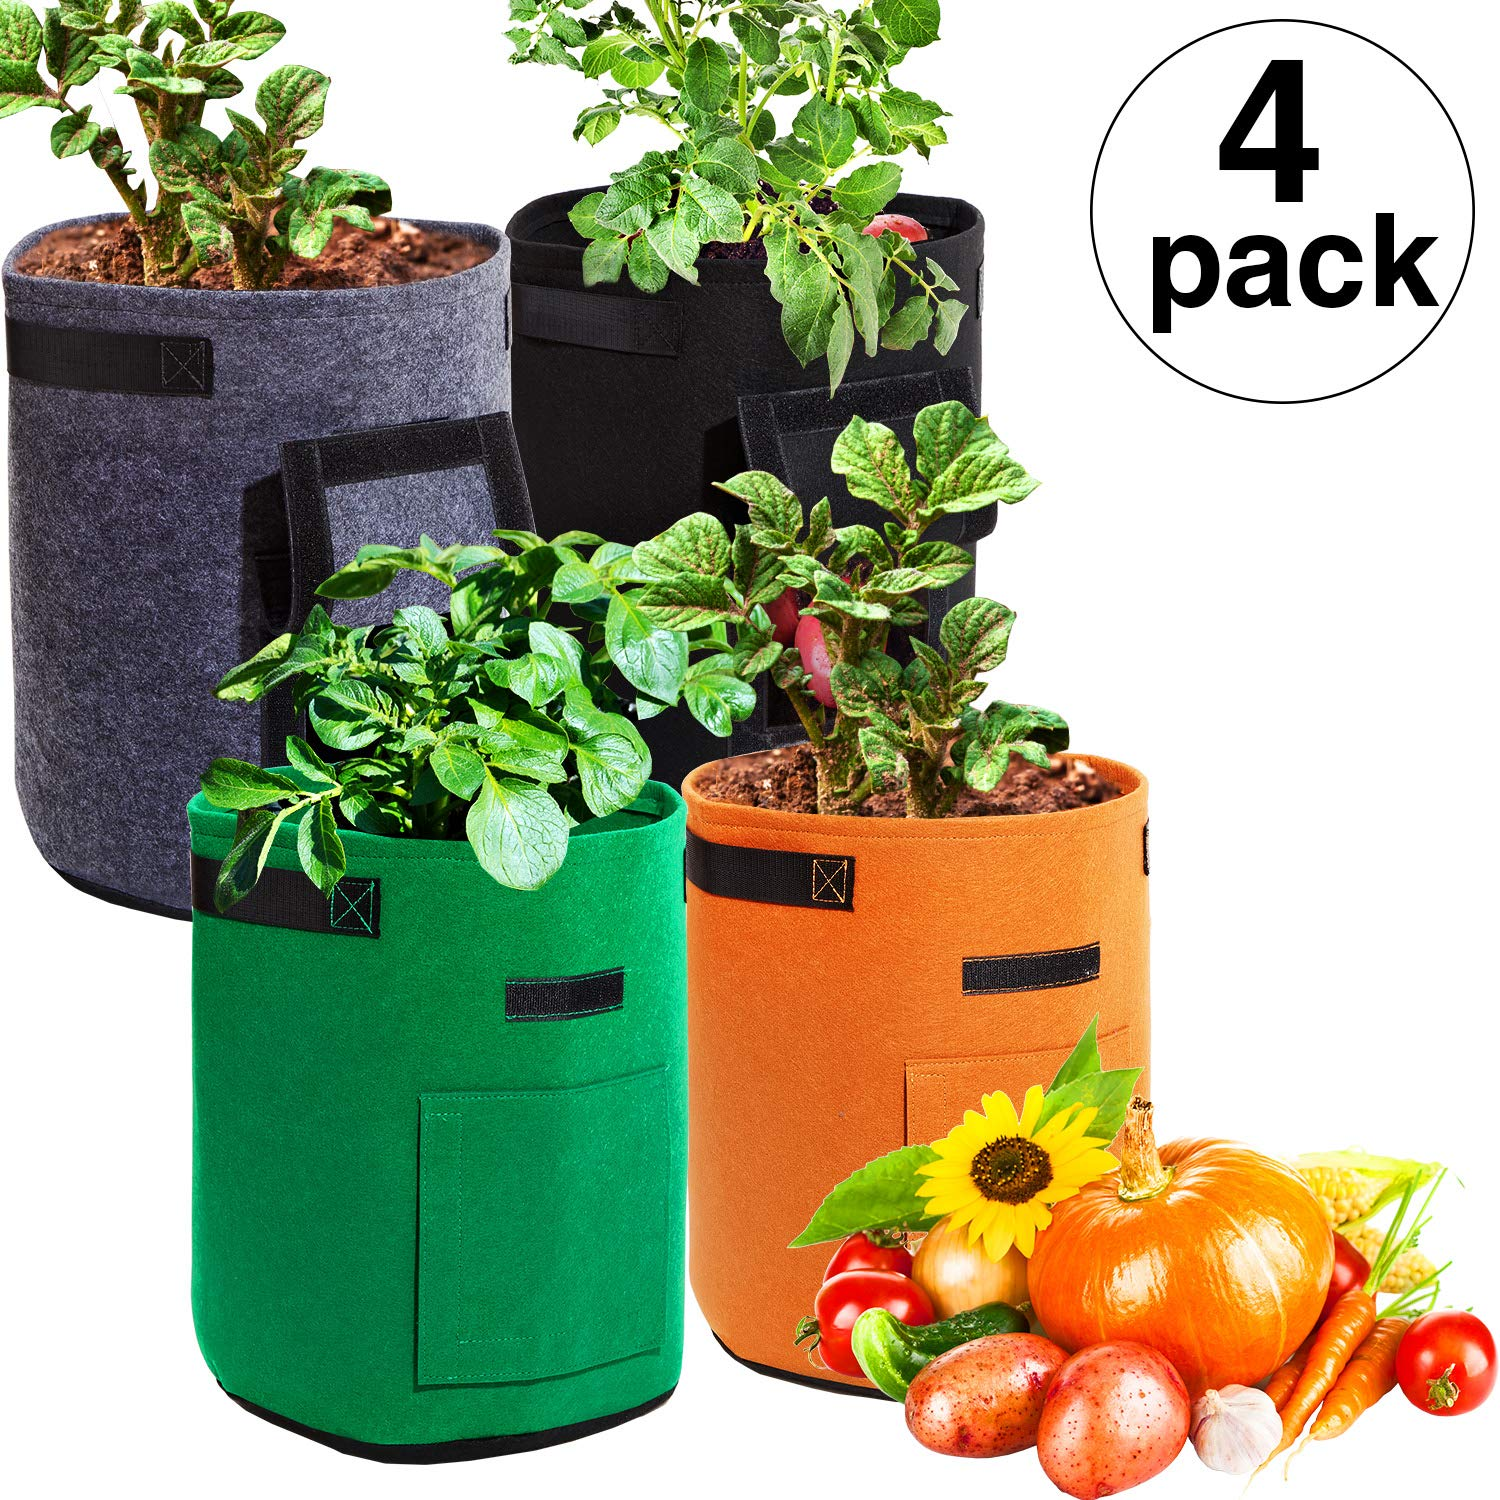 Maitys 4 Pieces Potato Grow Bags, 7 Gallon Garden Vegetables Planter Bags with Flap and Handles Non-Woven Grow Bags for Potato Onion Carrot Tomato Gray, Brown, Green, Black